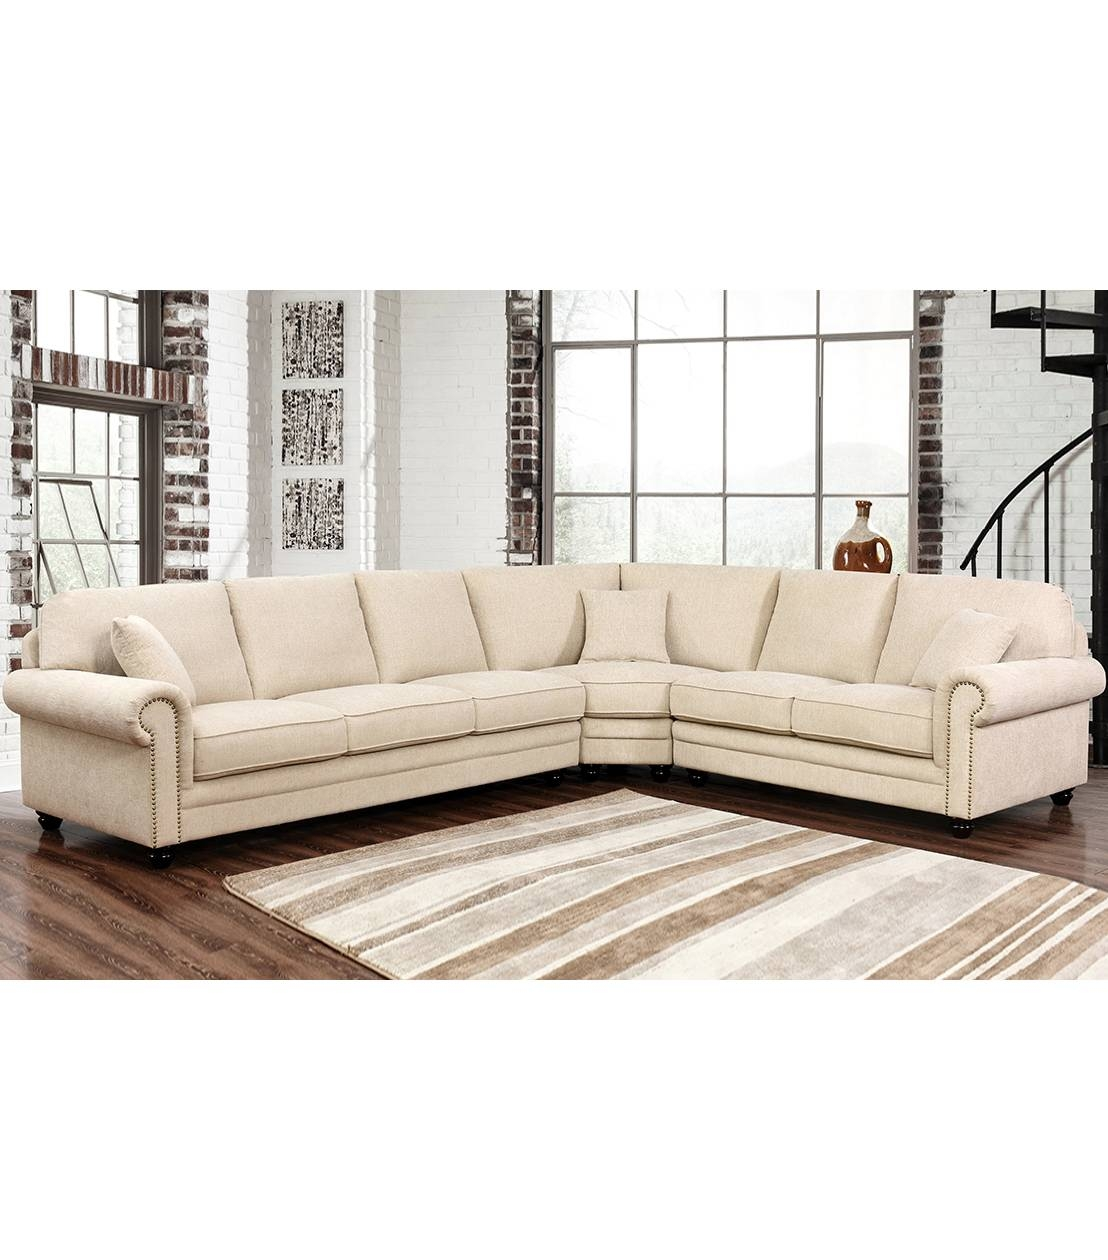 Sectionals : Deana Fabric Sectional With Abbyson Sectional Sofas (View 14 of 15)